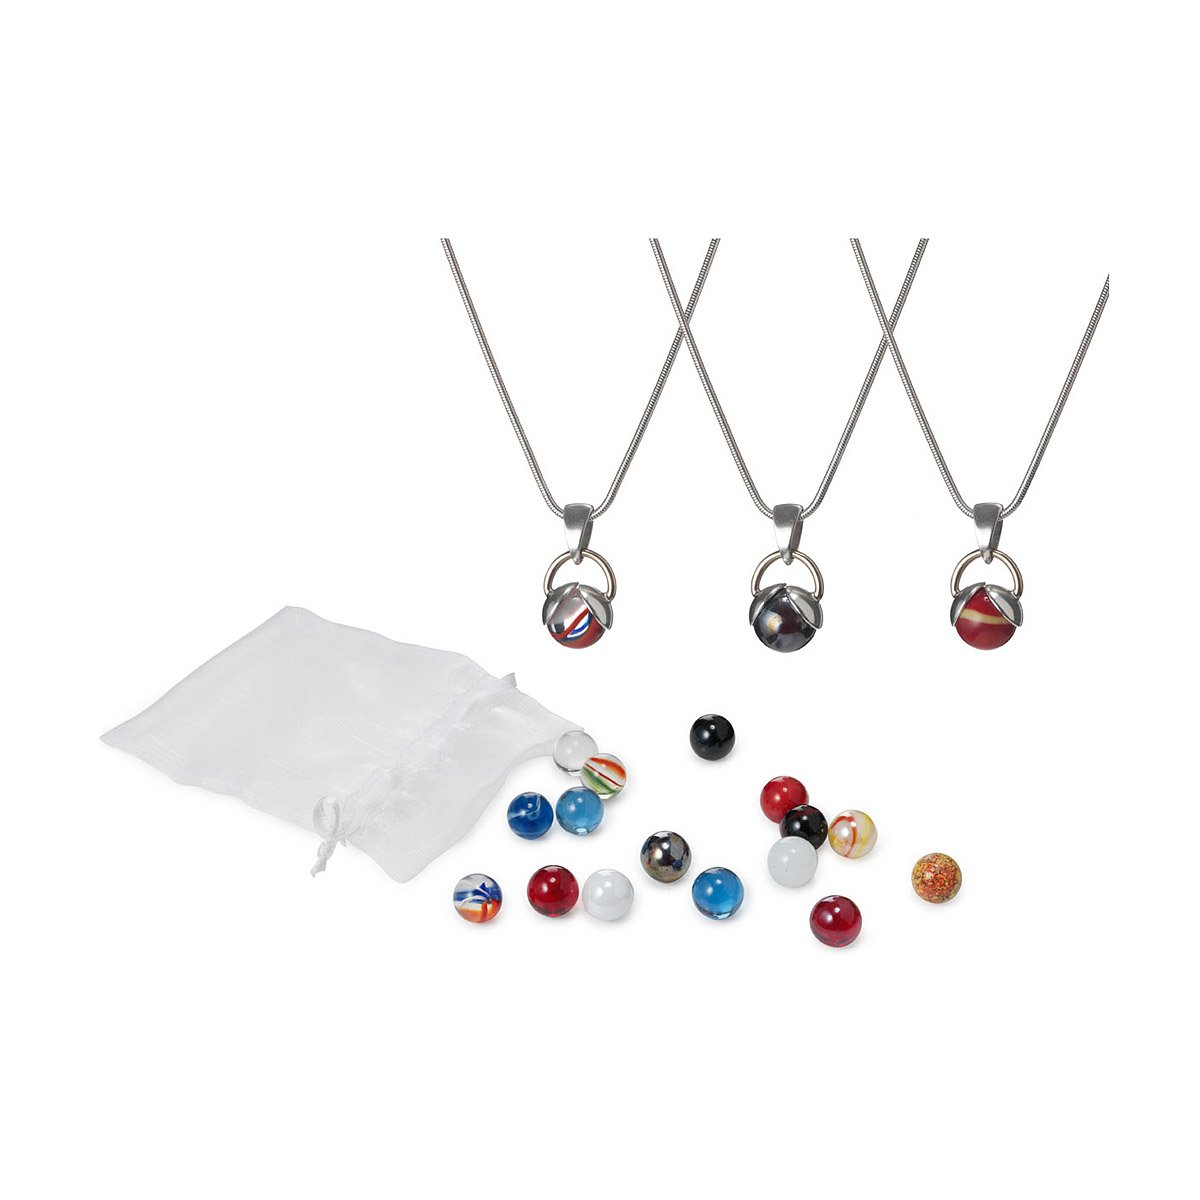 Interchangeable marble necklace interchangeables marbles necklaces interchangeable marble necklace 1 thumbnail aloadofball Image collections